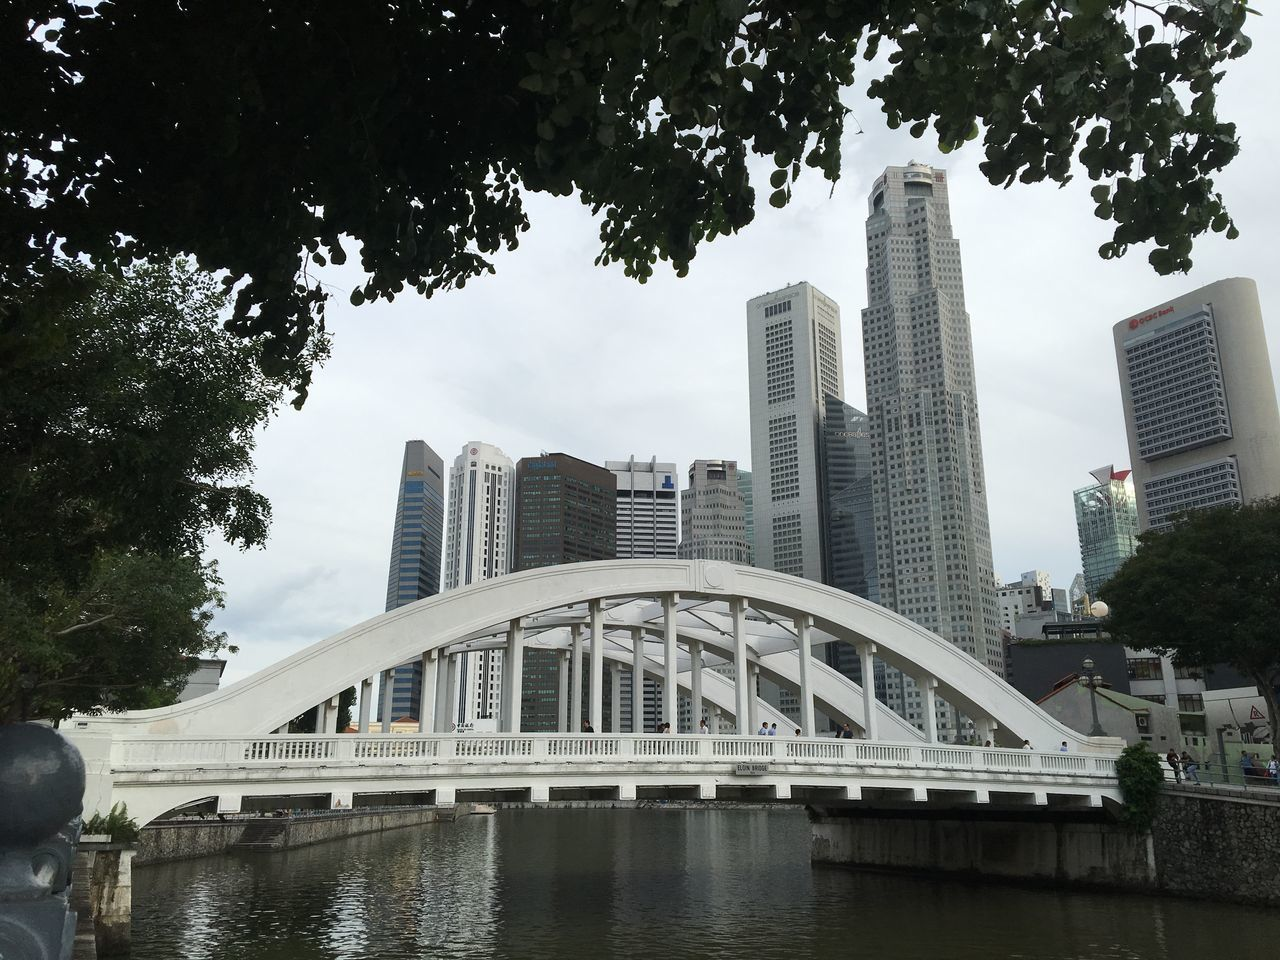 Elgin Bridge is seen in front of office buildings at Singapore's central business district. Elgin Bridge Bridge Office Buildings Offices Singapore River Road River CBD Central Business District Singapore